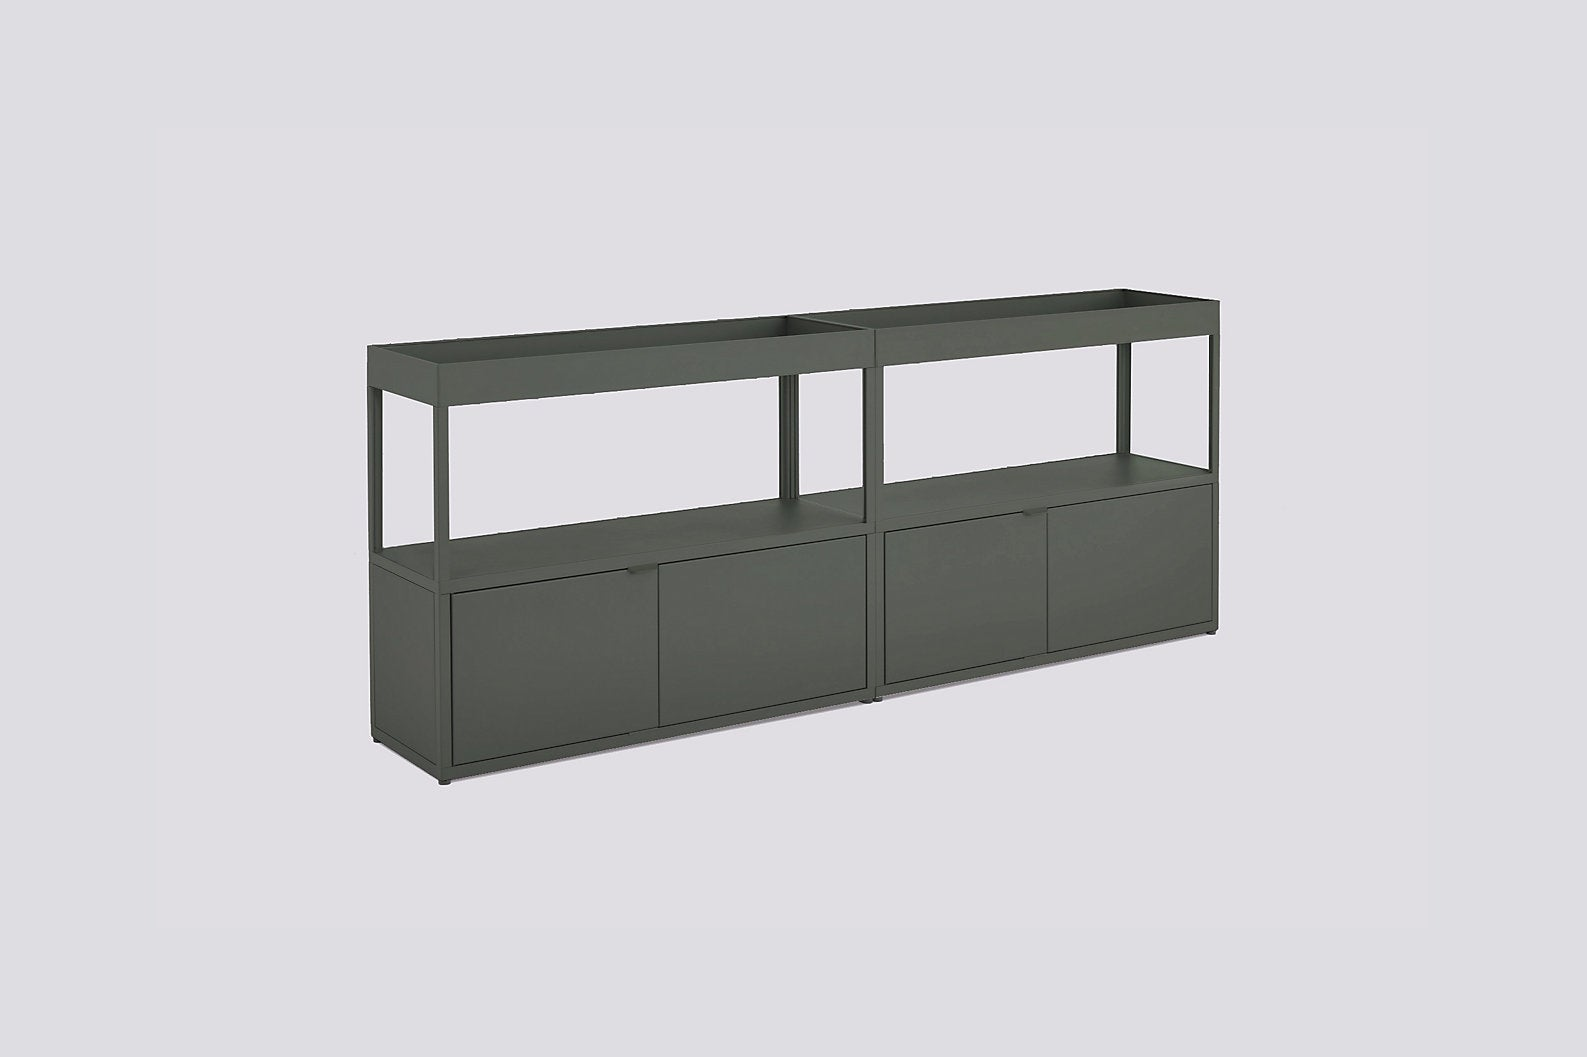 Hay's Best-Selling Storage Unit Is Now Available in the U.S.